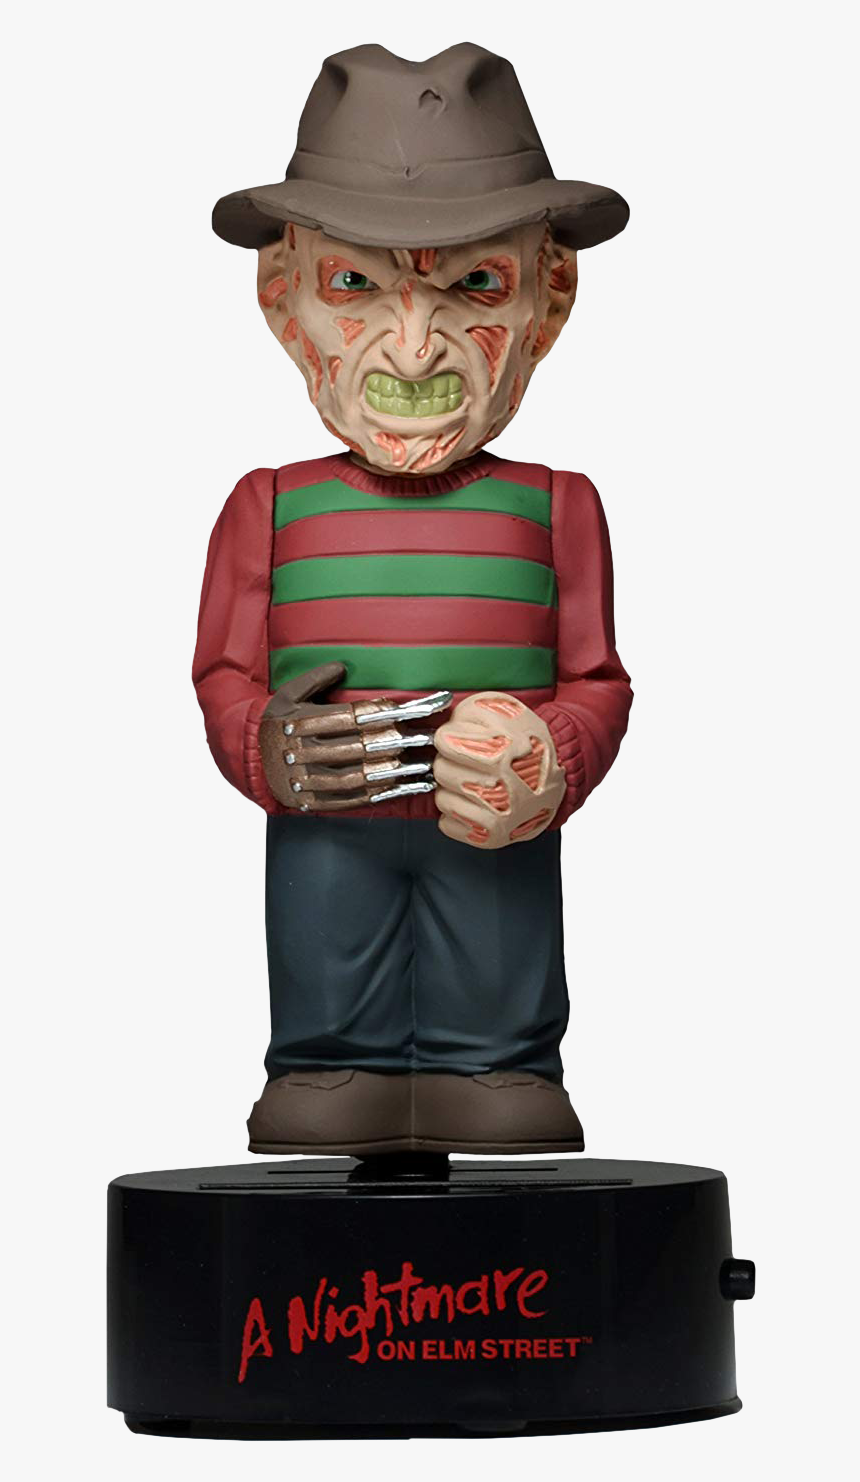 Transparent Whole Body Clipart - Nightmare On Elm Street, HD Png Download, Free Download